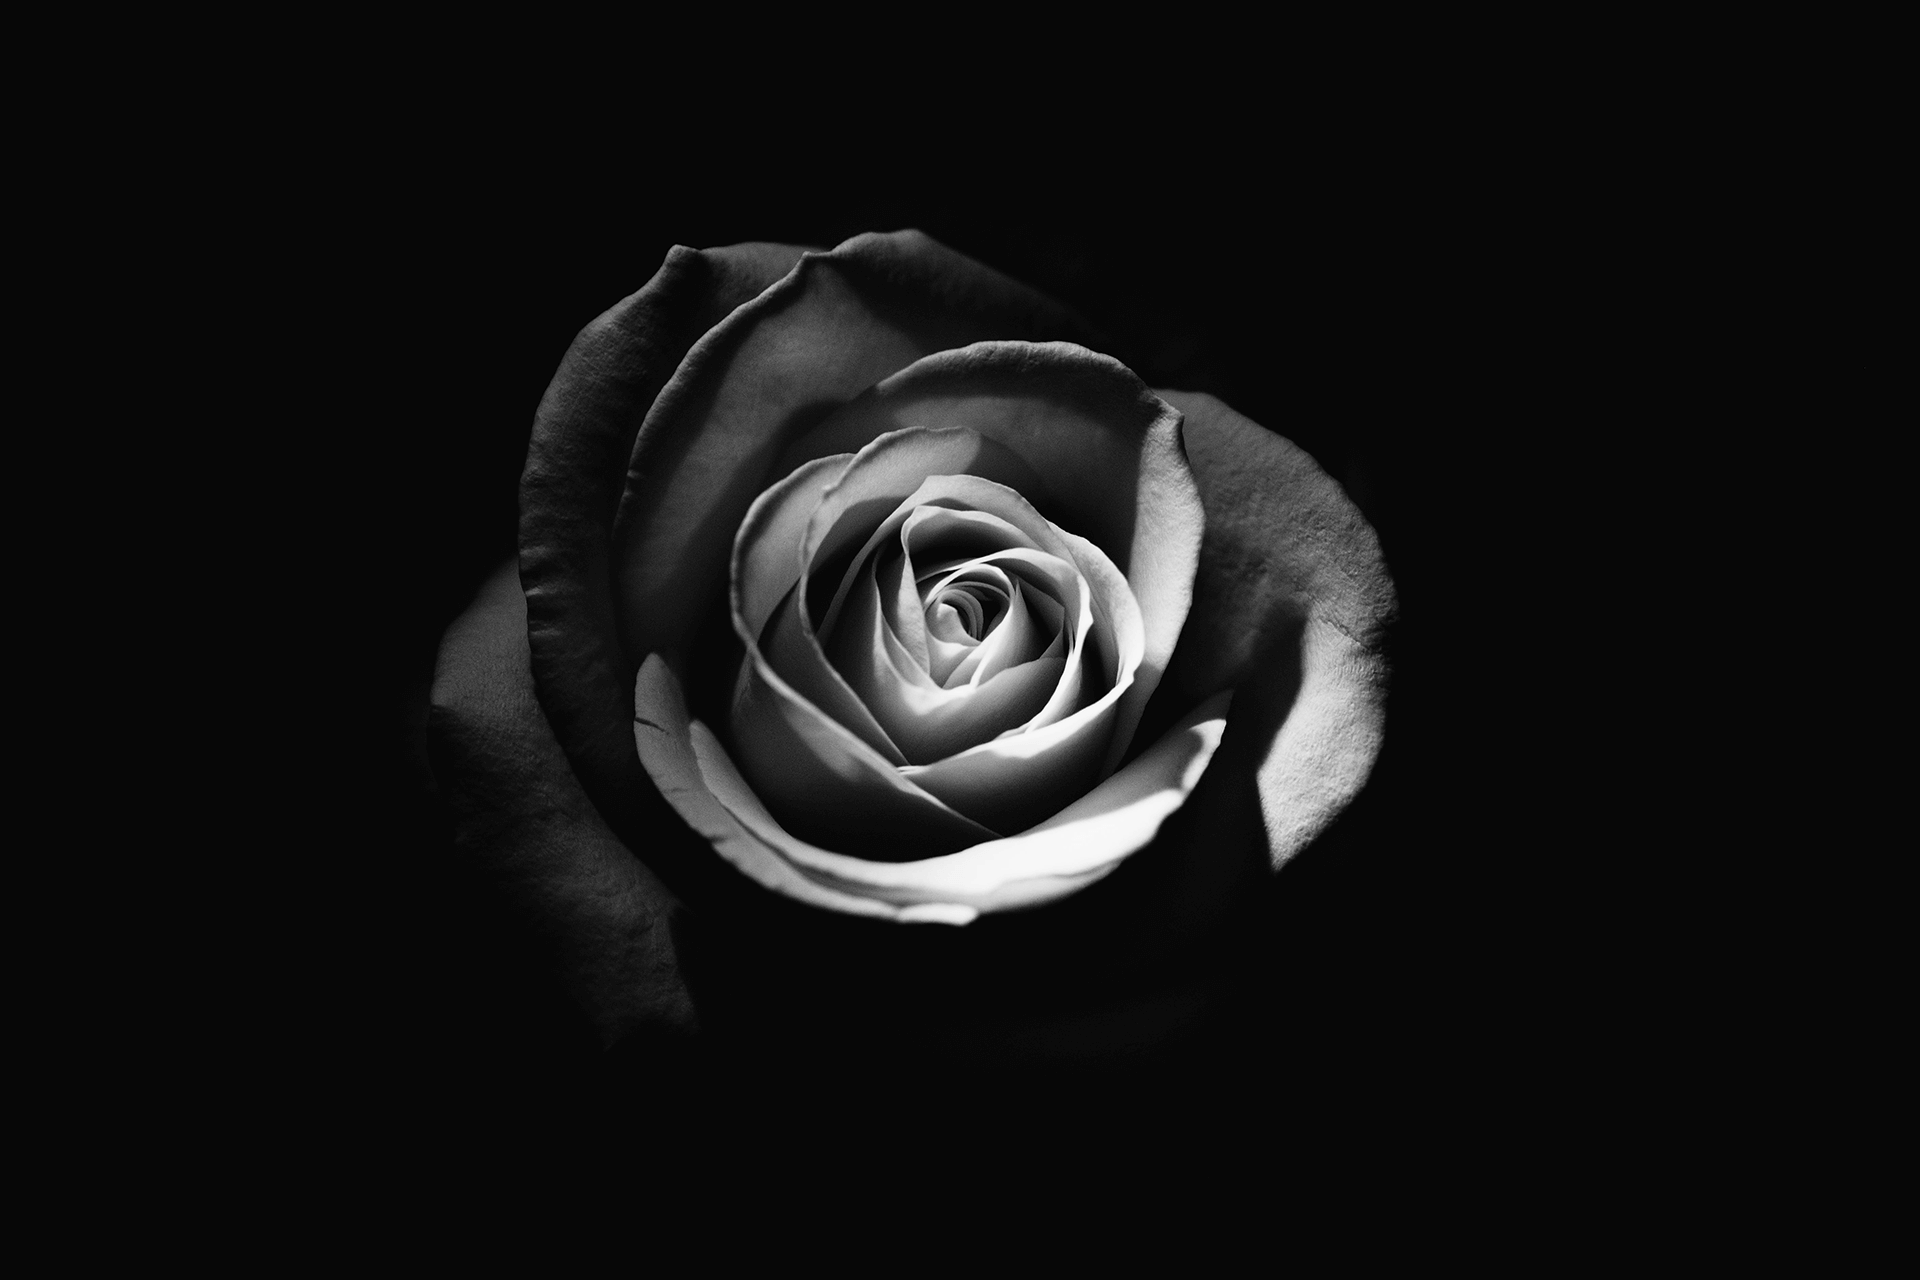 Rose - Rodion Kutsaev, Unsplash web